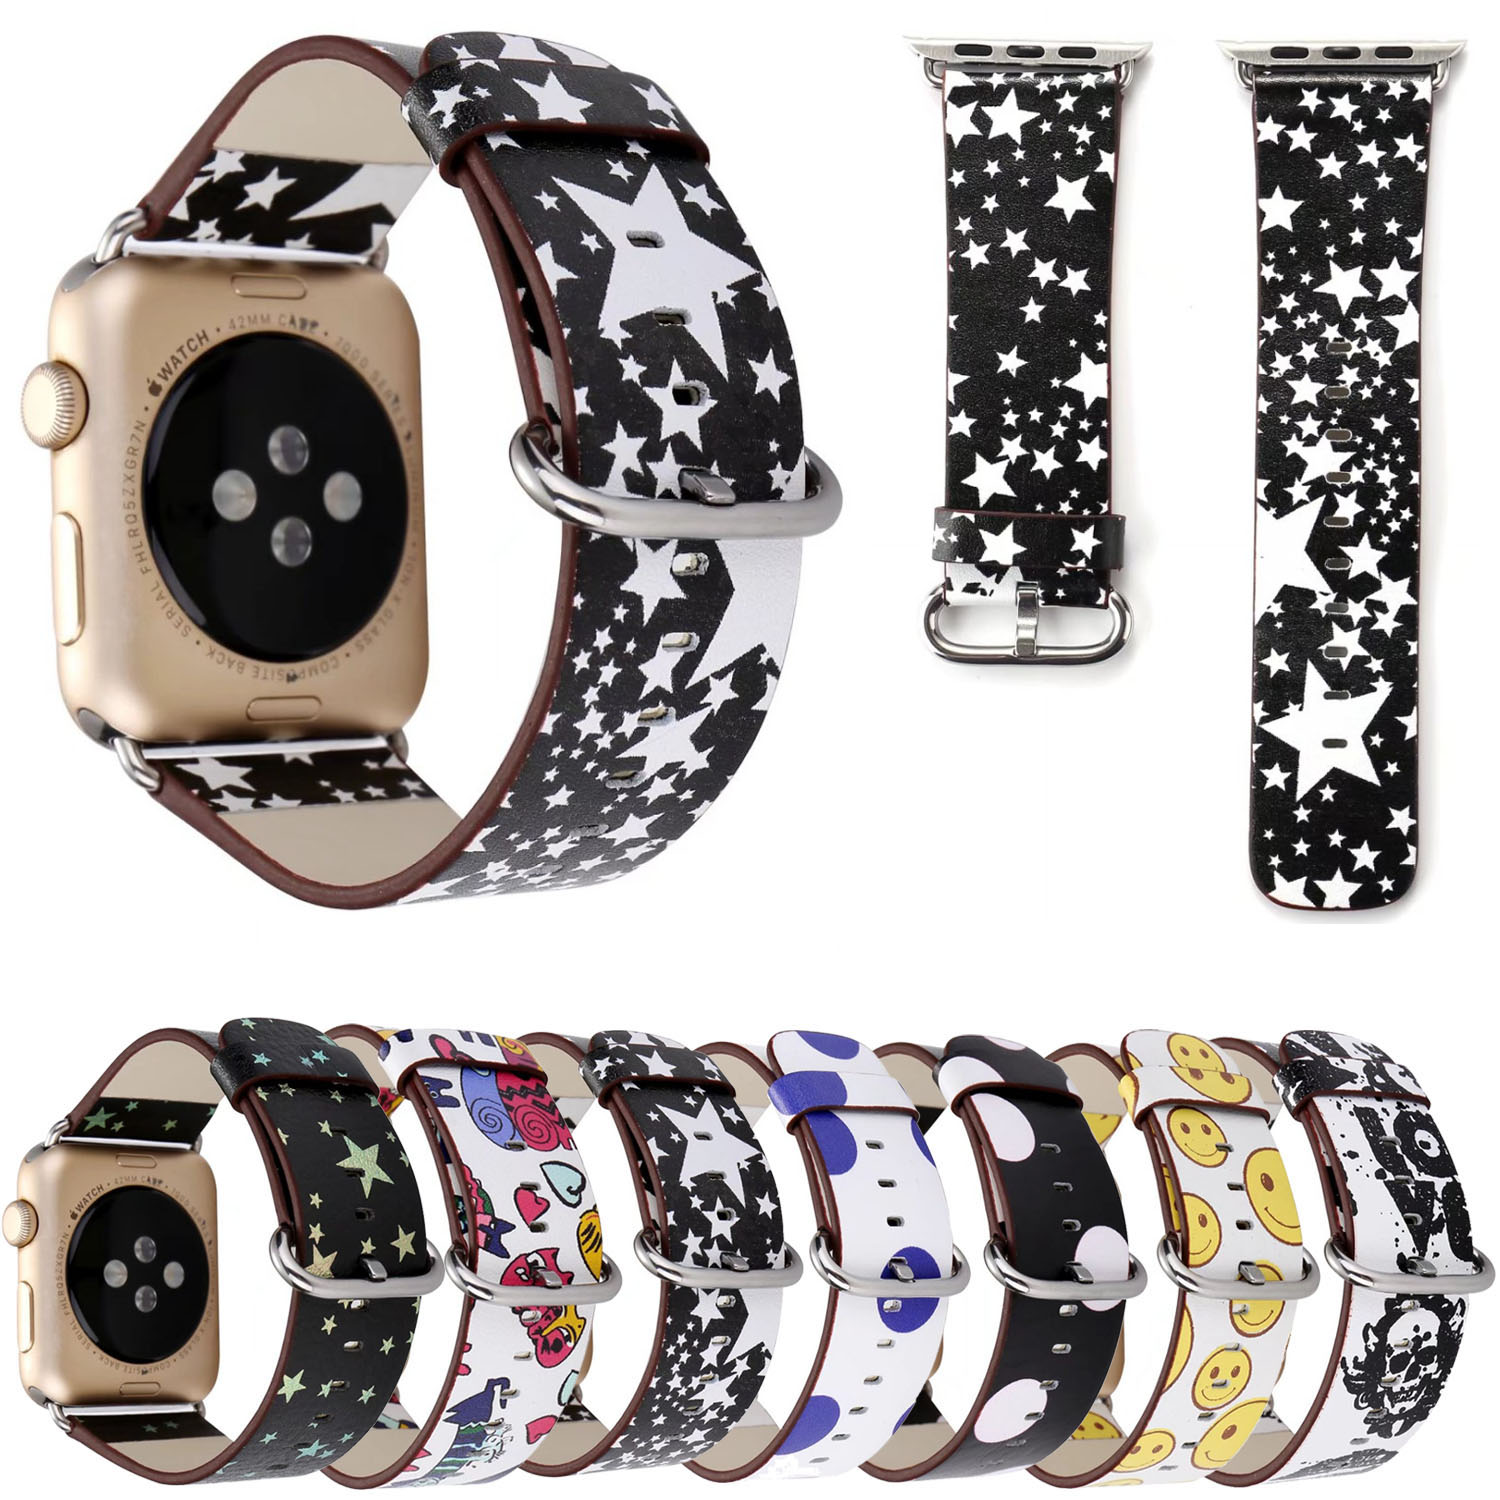 Genuine Leather Band for Apple Watch Series 3 Strap Stars